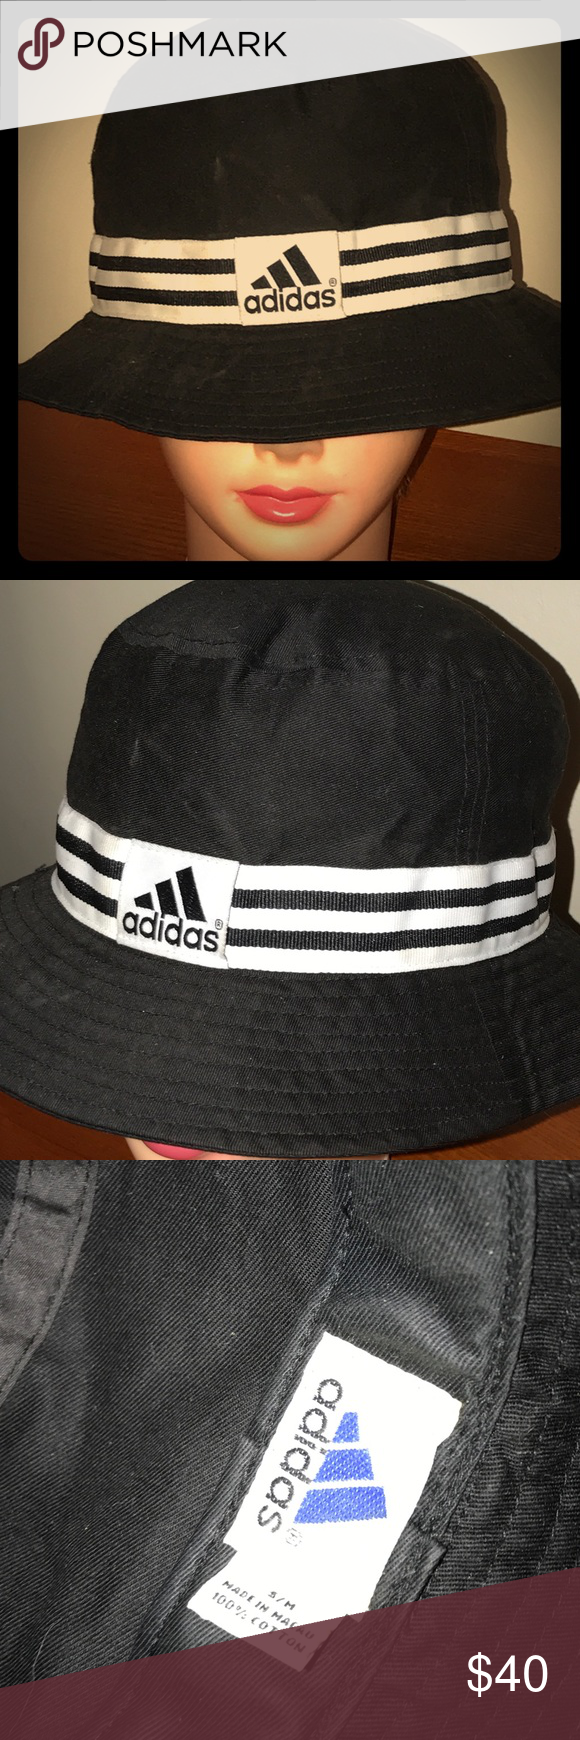 afe9632c3ff Vintage old school Adidas bucket hat Old-school Adidas vintage bucket hat  size small to a medium hundred percent cotton adidas Accessories Hats